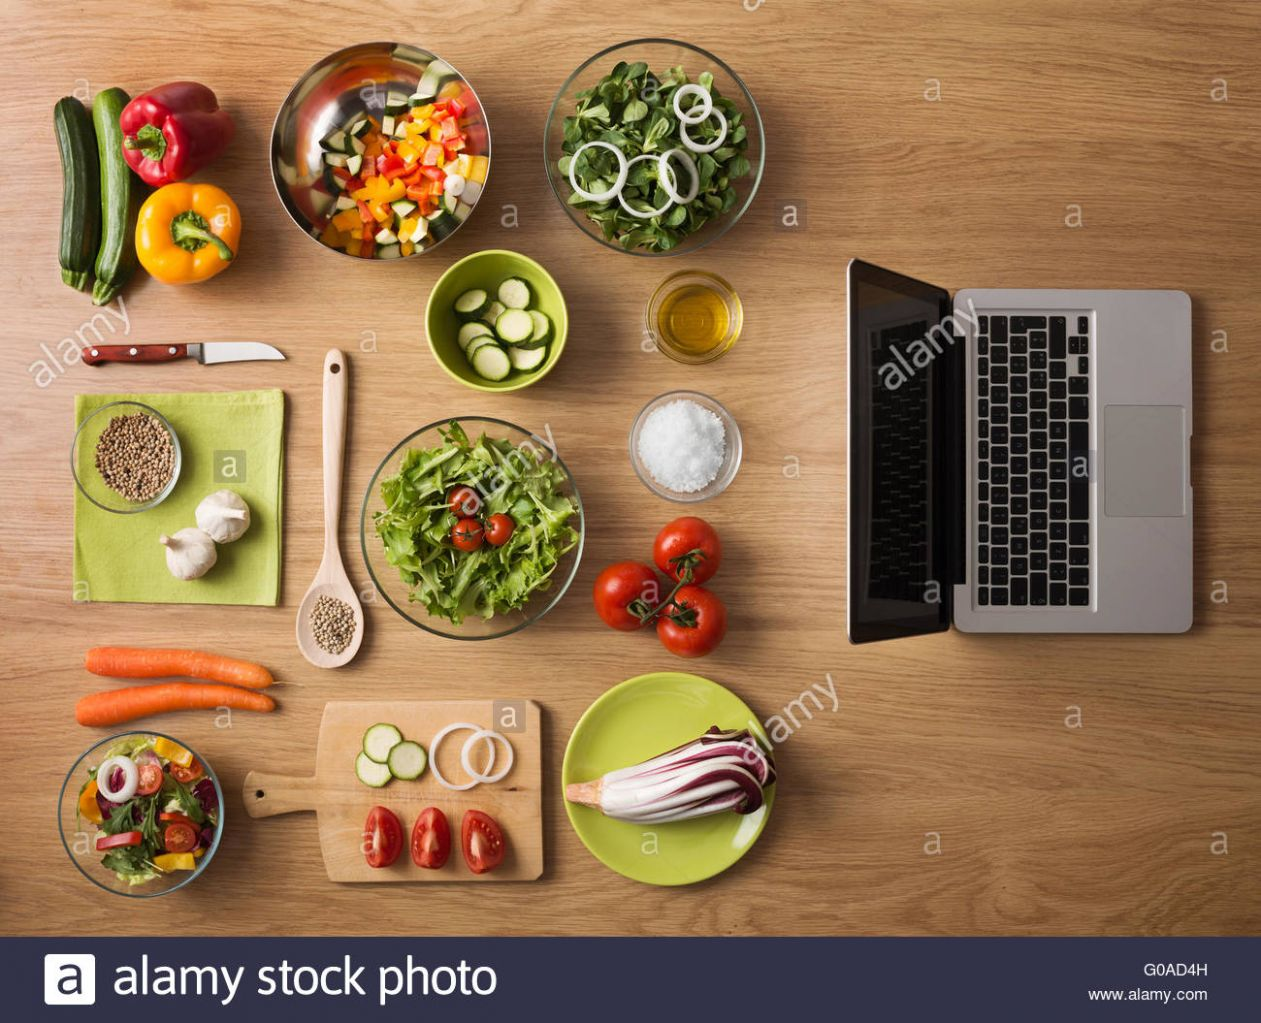 Online recipes concept with fresh vegetables, food ingredients and ..